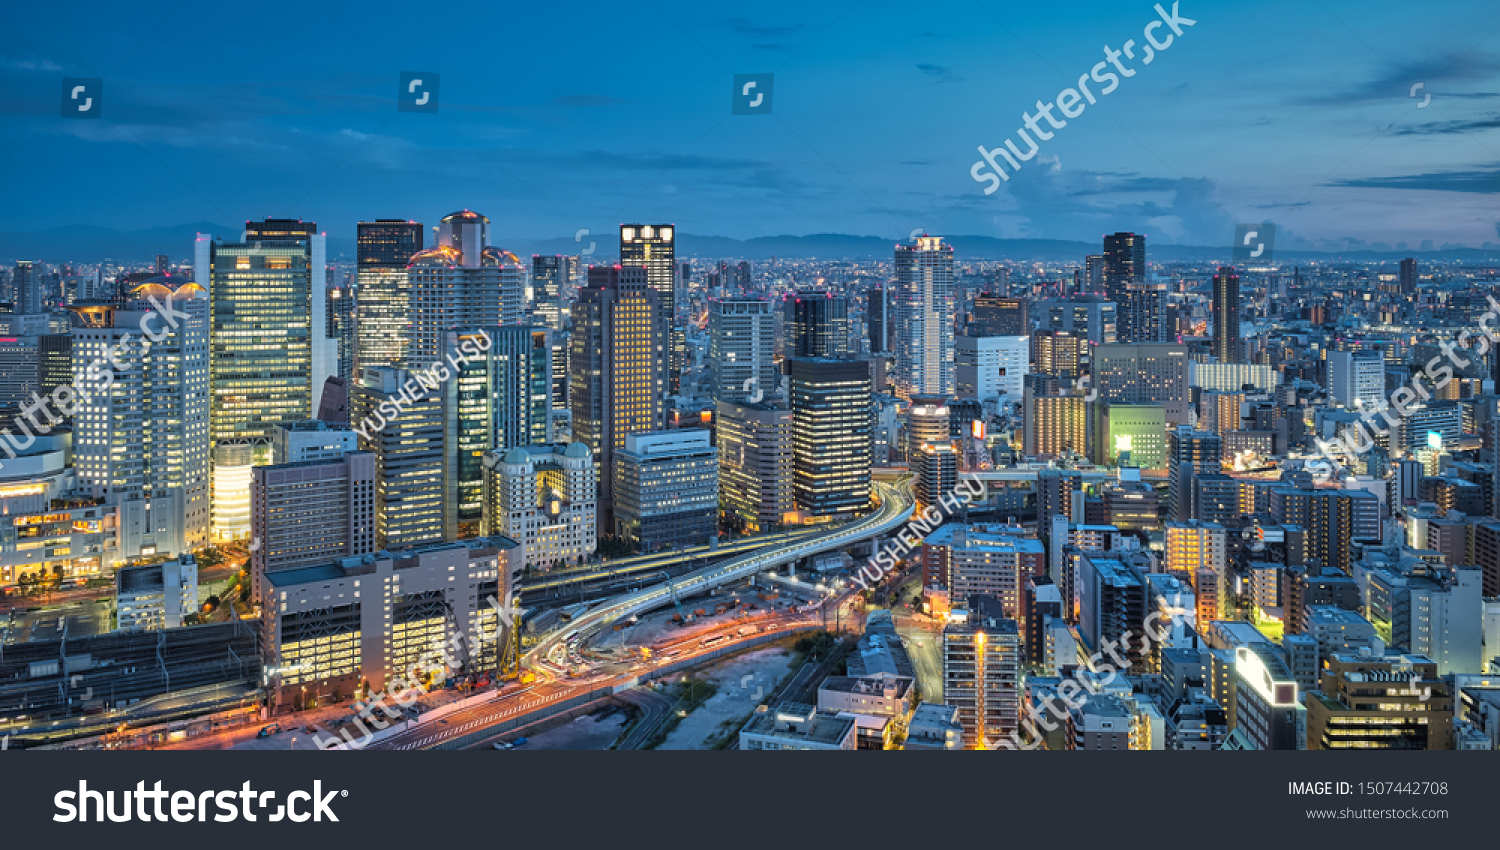 Aerial night view of Osaka city - Asia business city concept image, panoramic modern metropolis bird's eye view at evening, shot in Umeda Sky Building observatory, Osaka, Japan. #1507442708